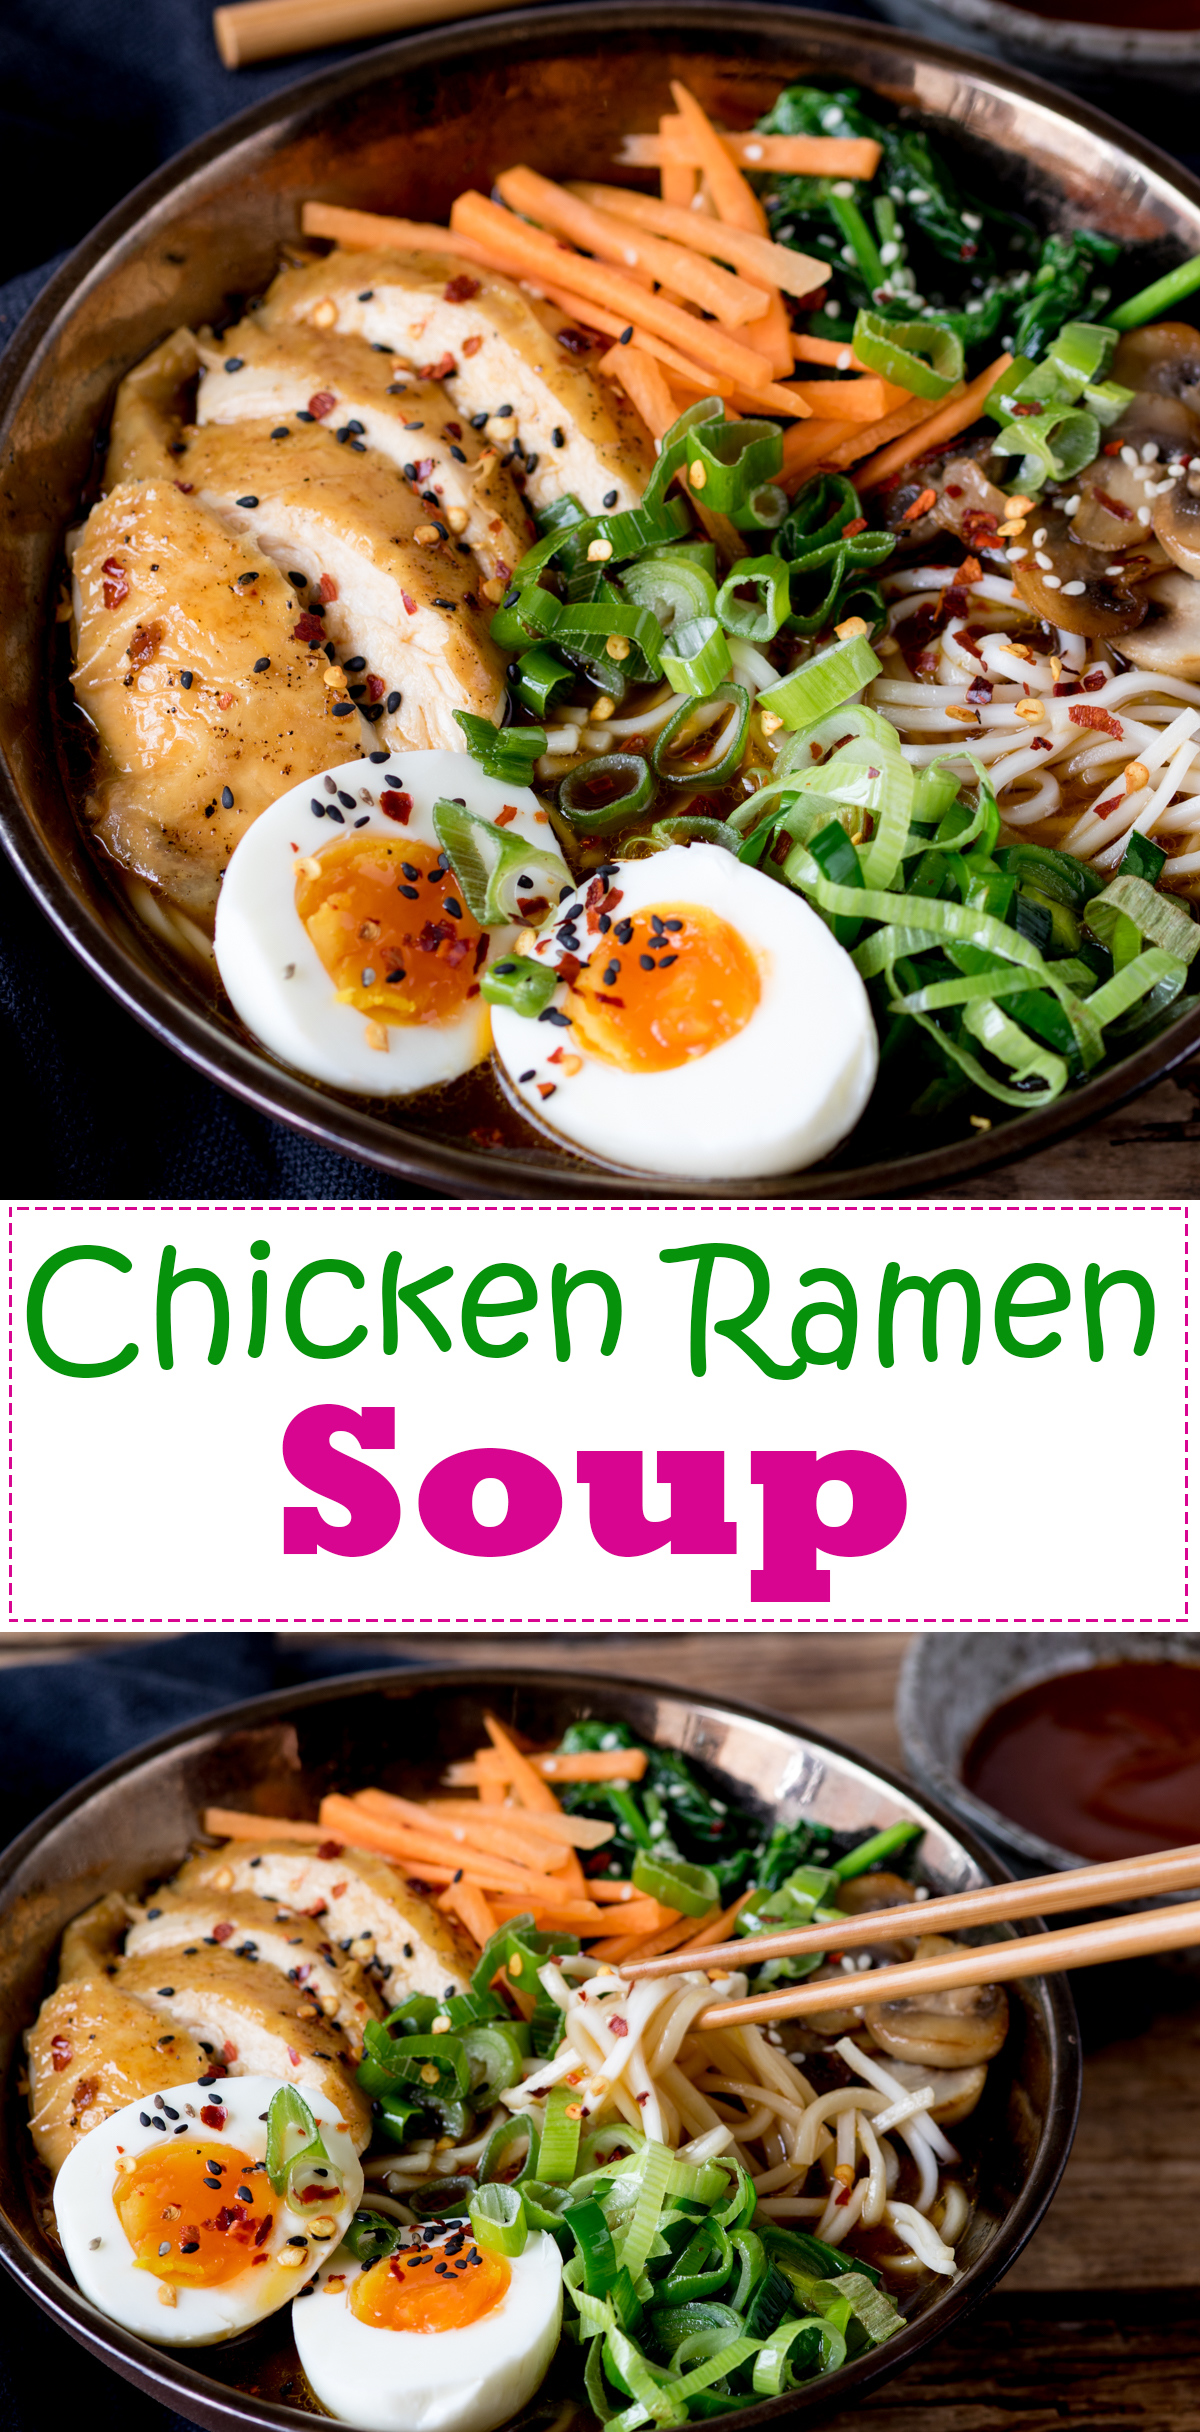 Chicken ramen soup diy pinterest